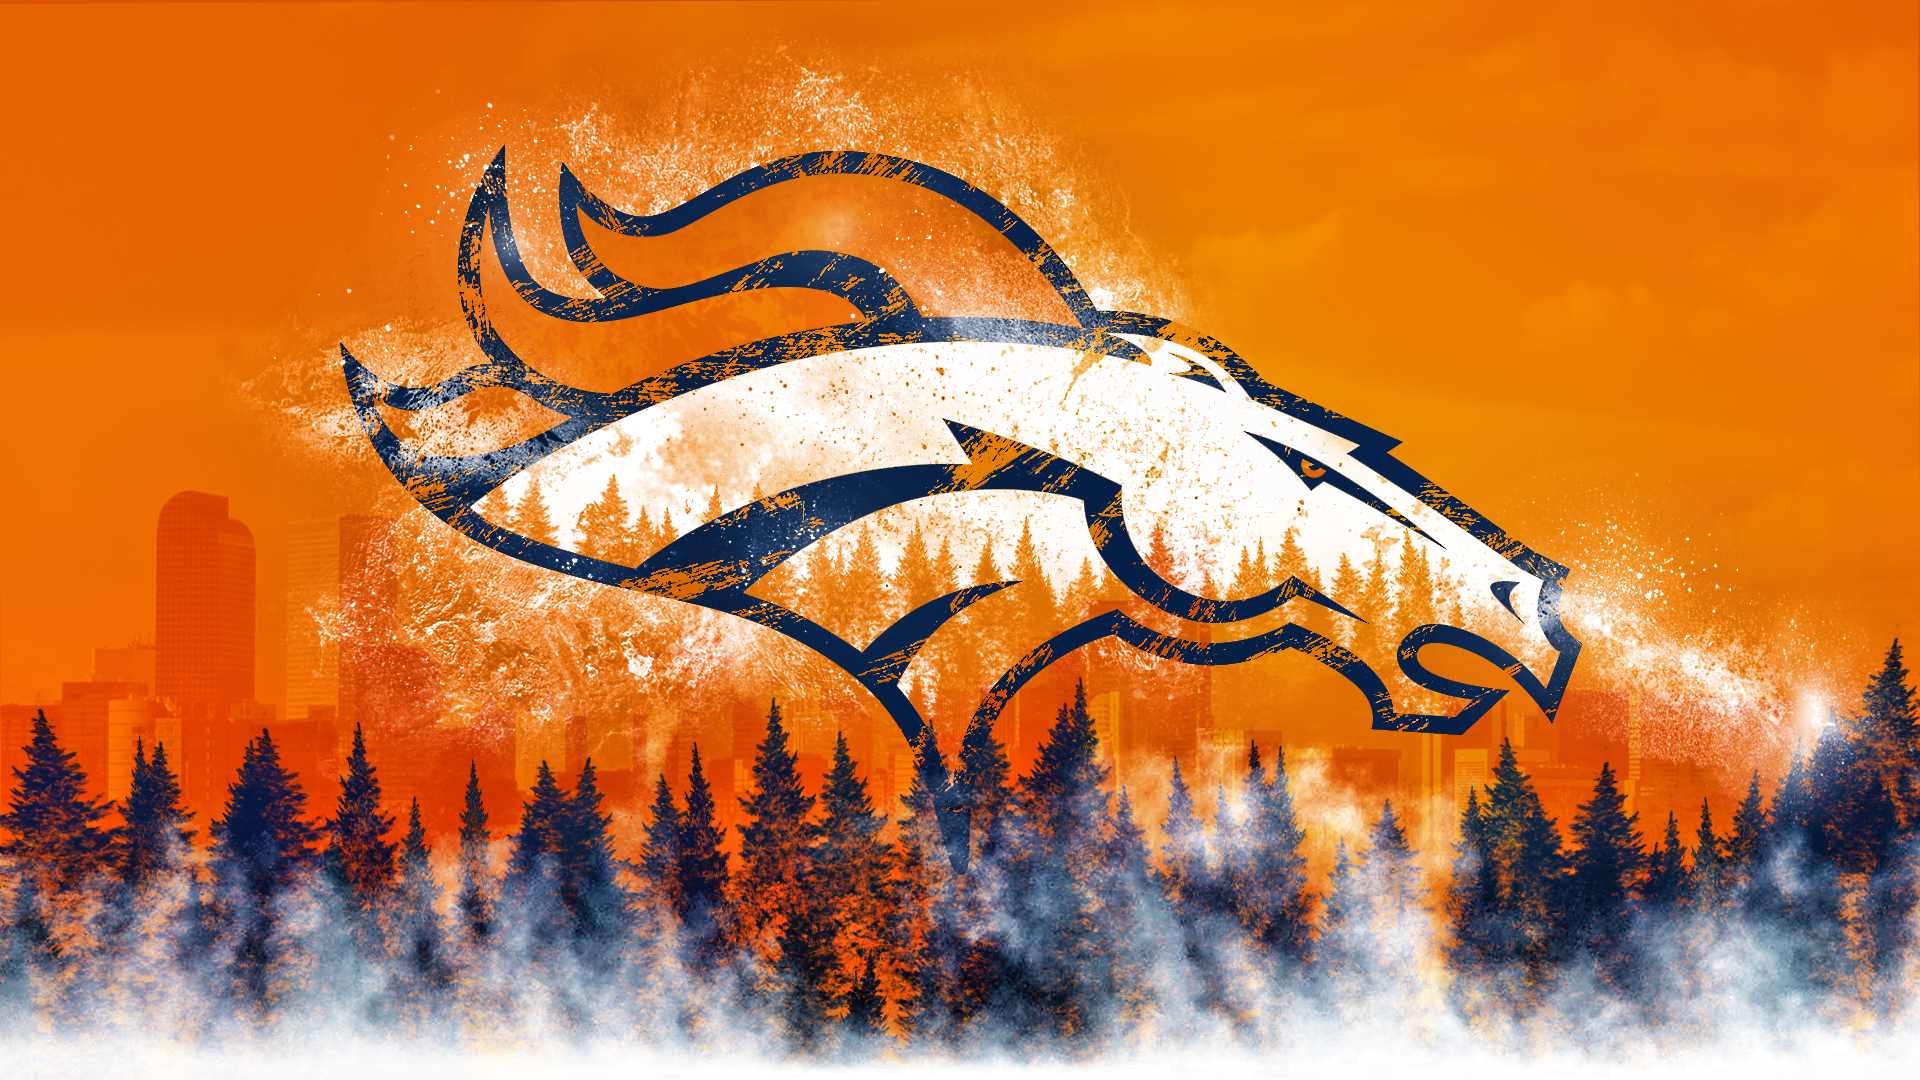 Broncos-Country-Logo-by-DenverSportsWalls-deviantart-com-on-deviantART-wallpaper-wp6002497